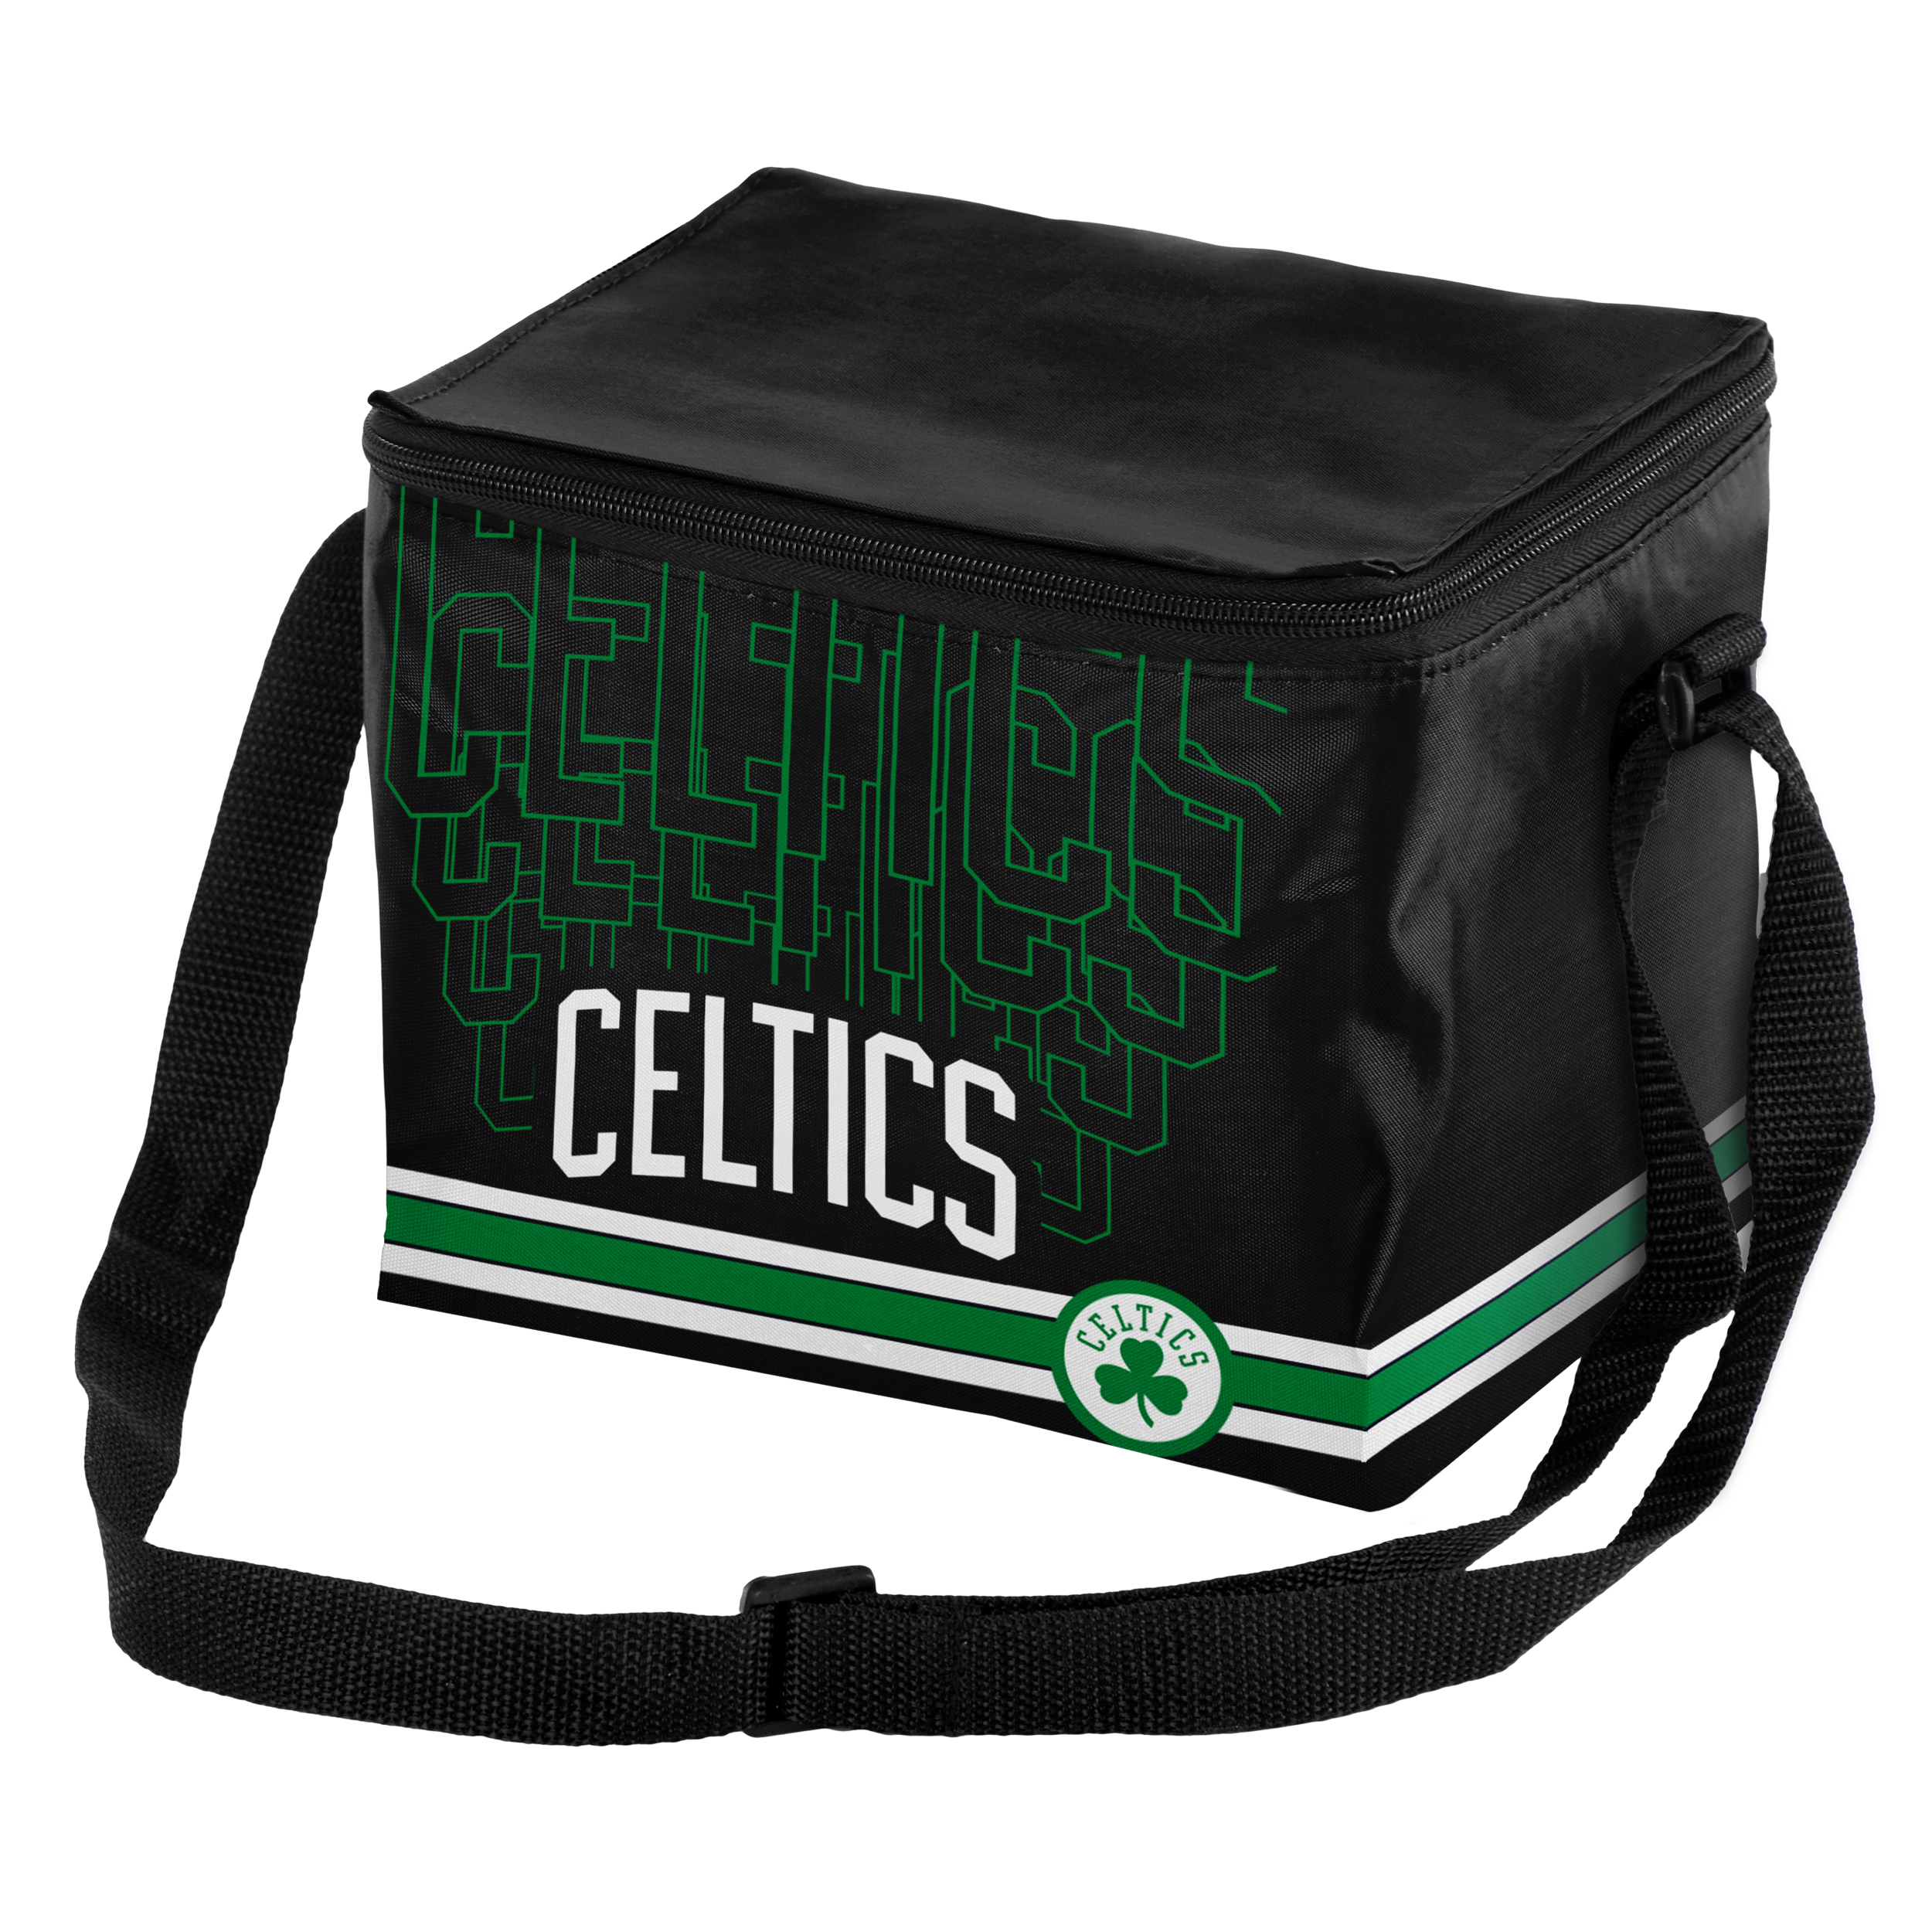 Boston Celtics Official NBA 9.5 inch  x 5 inch  Insulated 6-Pack Cooler by Forever Collectibles